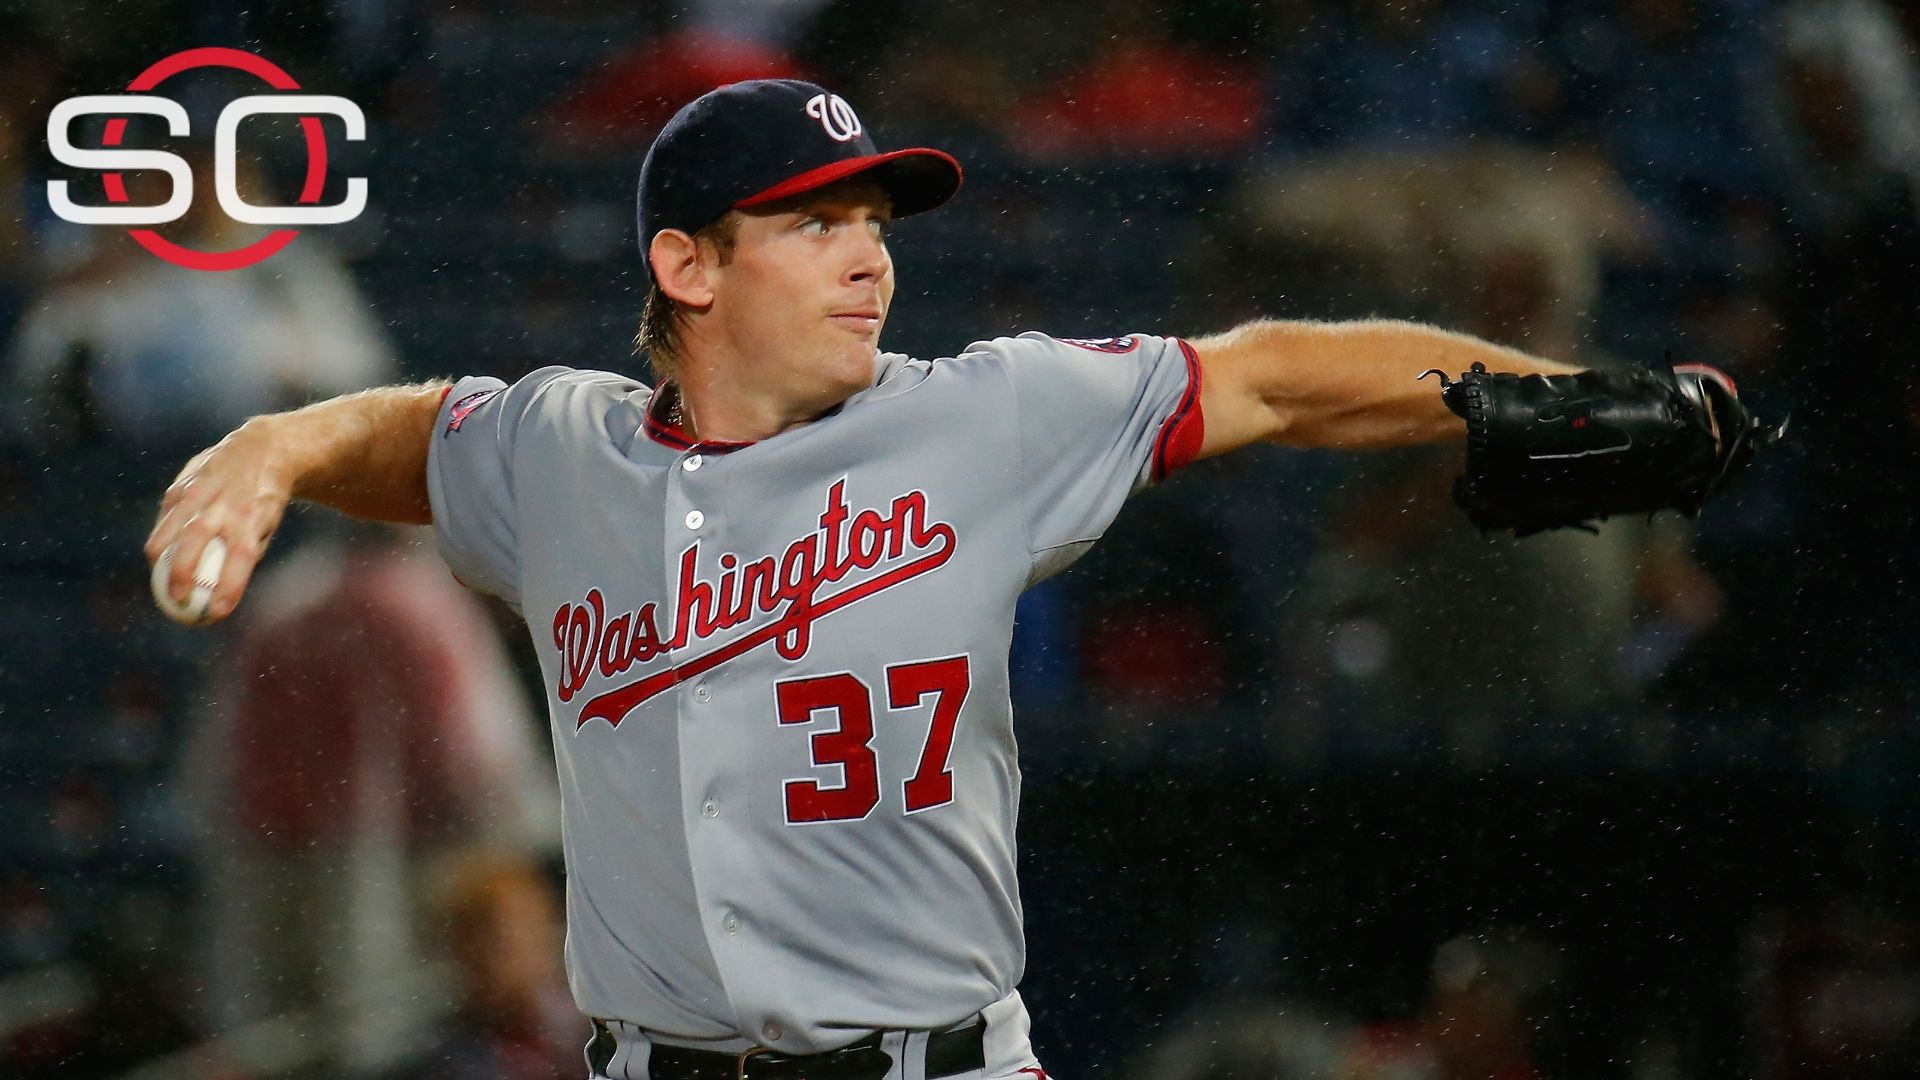 Why doesn't Strasburg want to do a deal now?